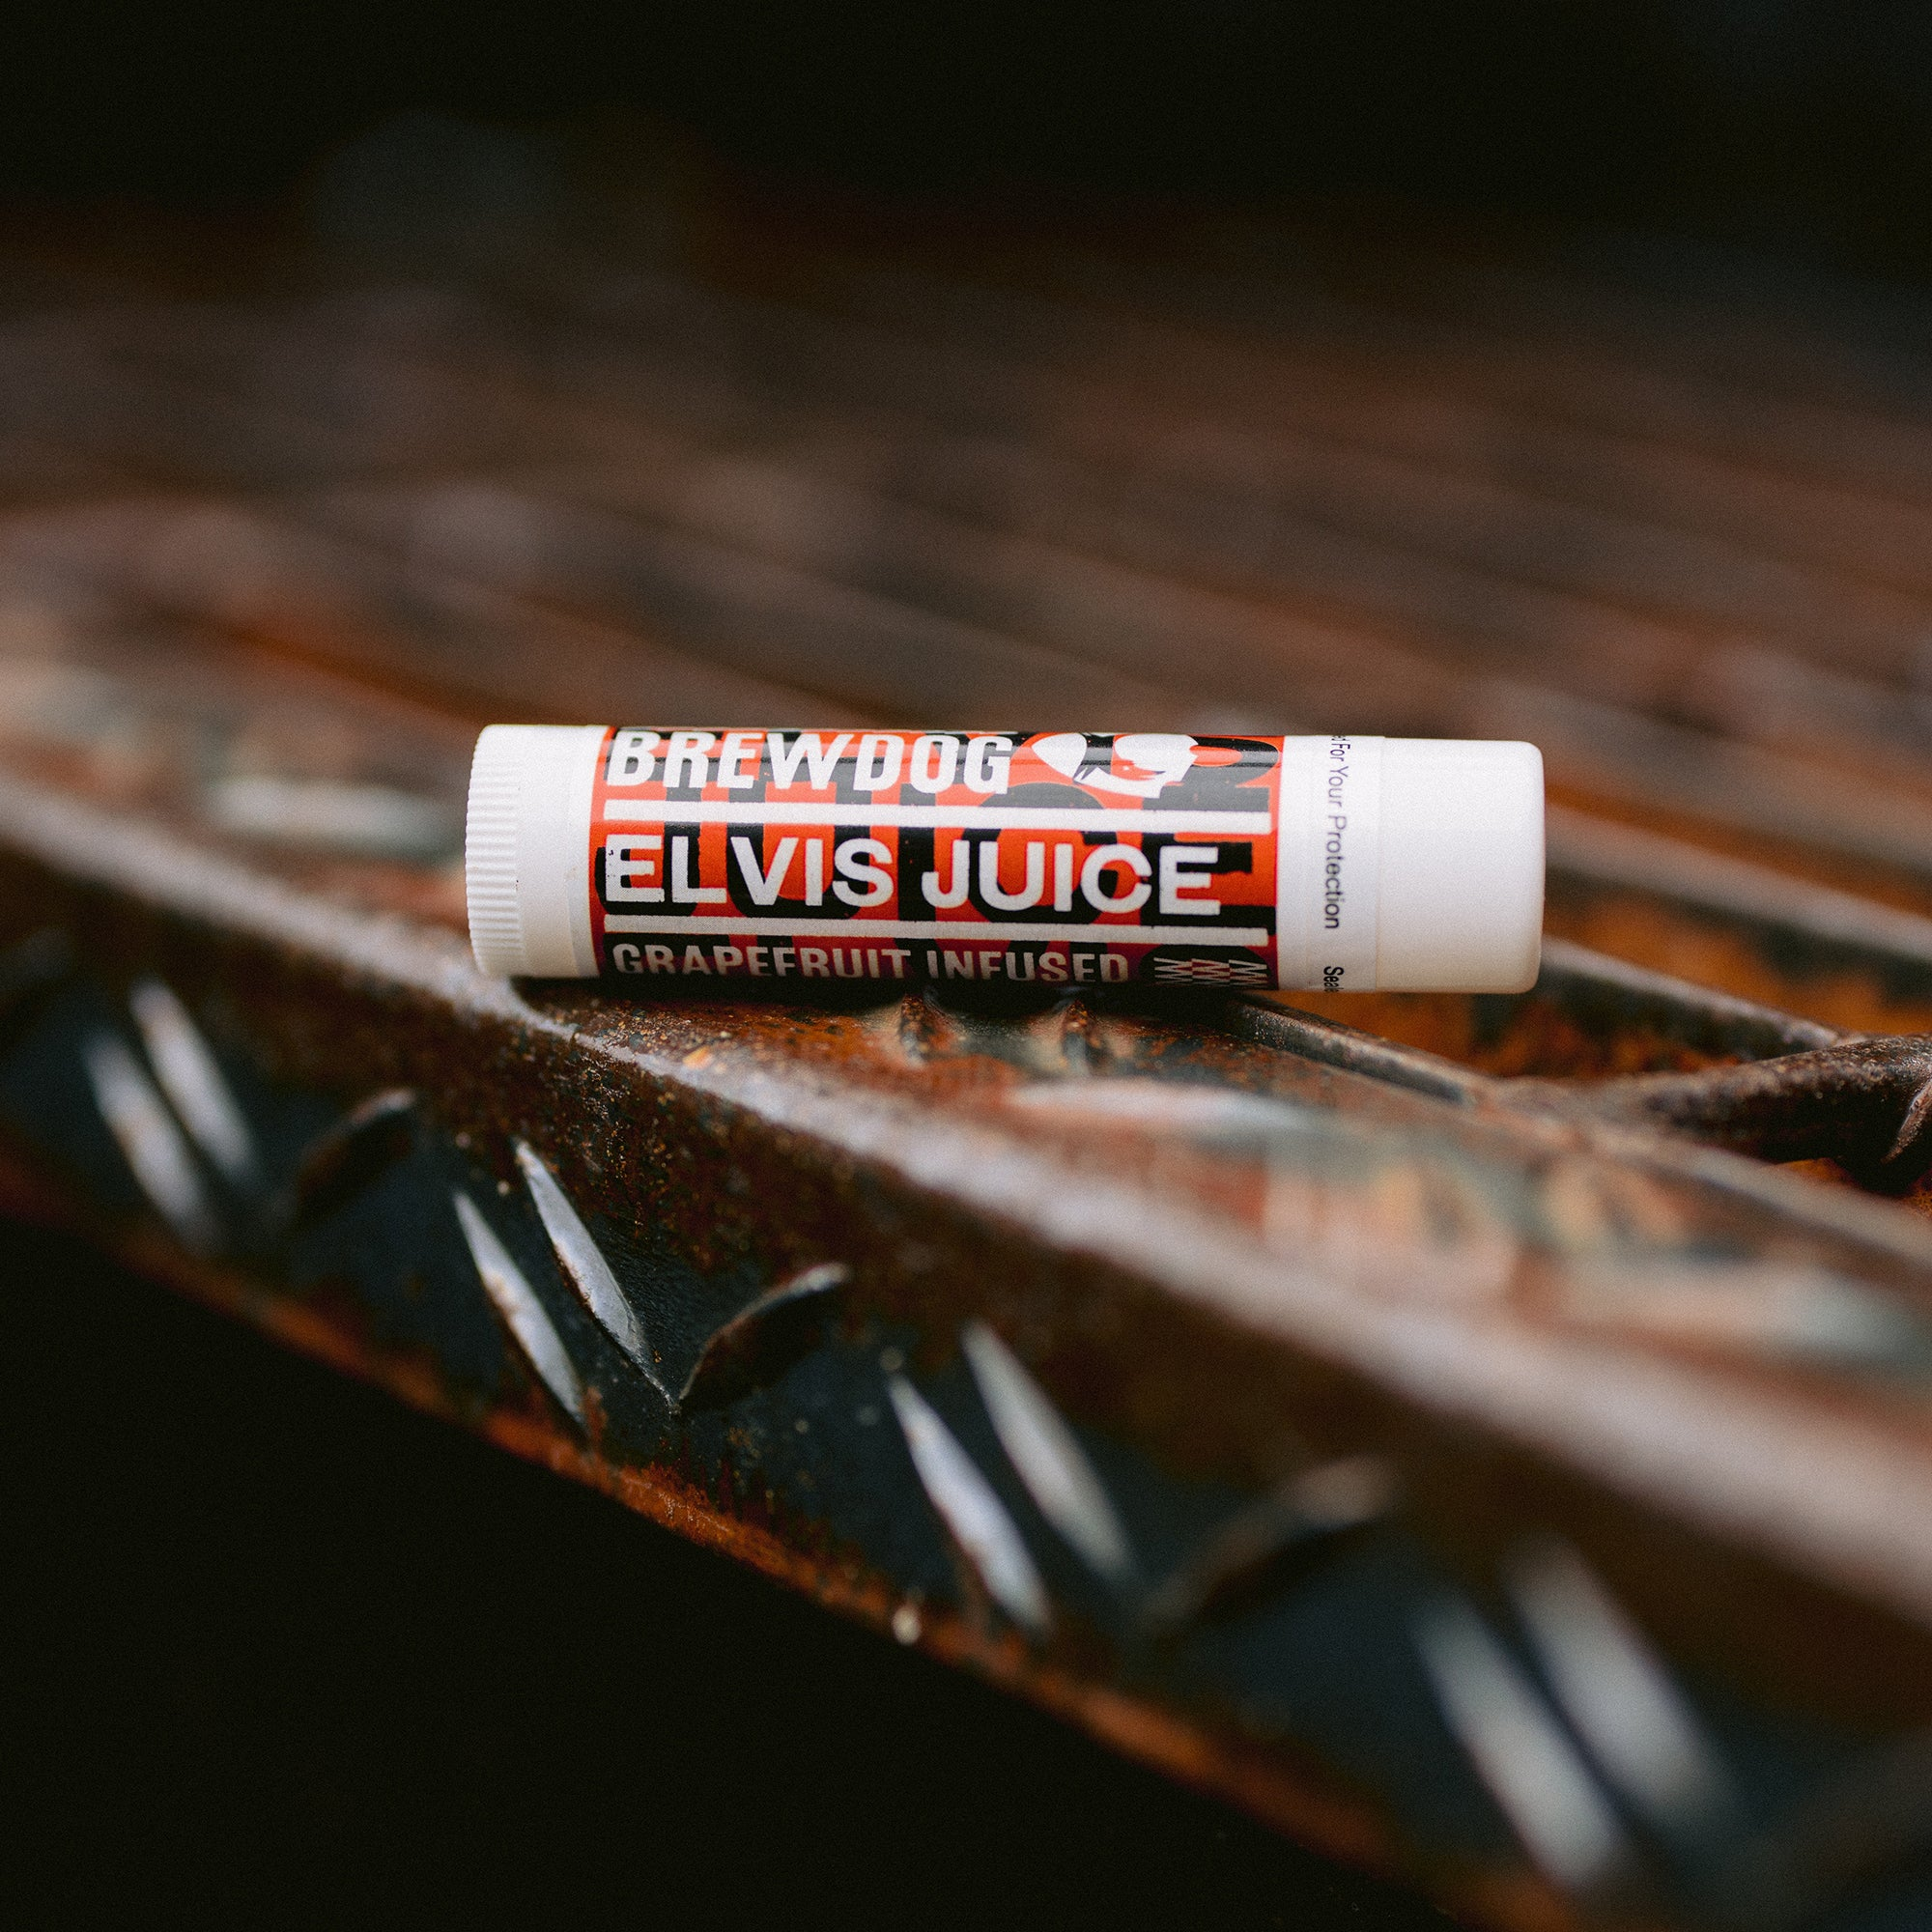 Elvis Juice Lip Balm